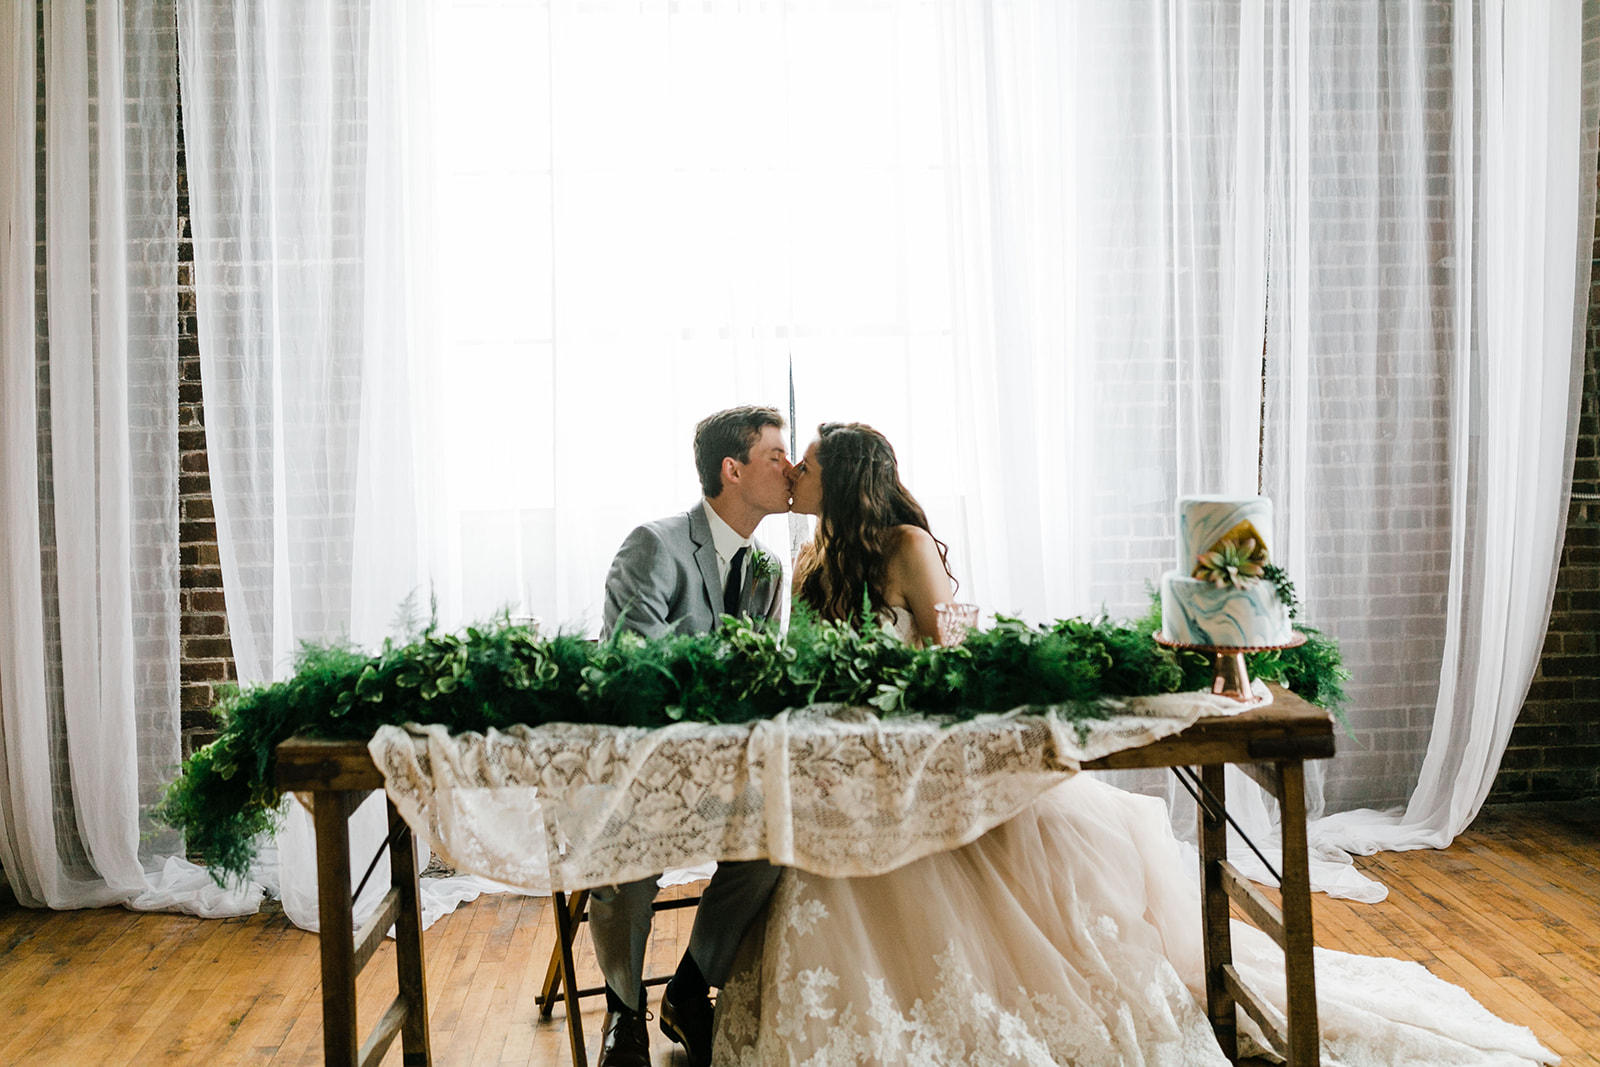 Wedding couple kisses while sitting at a large wooden table with a greenery garland in front of them and a wedding cake with a marble finish. Lace edges the couture wedding gown from Des Moines Iowa, colors of the tux are steel grey and blue, brick walls are in the background of the studio space